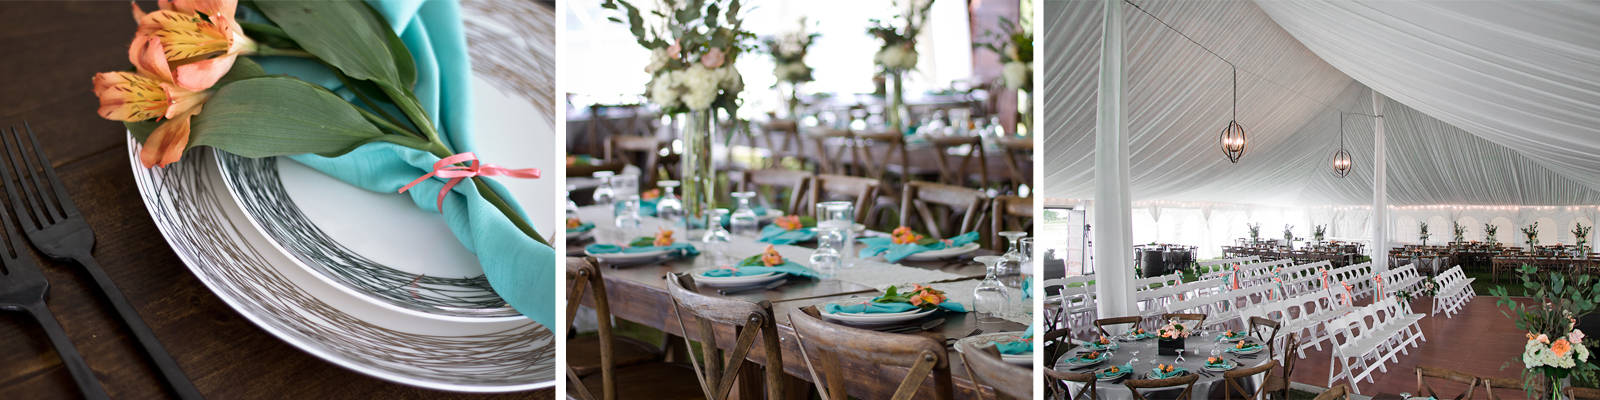 Event rentals in South Bend-Mishawaka Metro Area